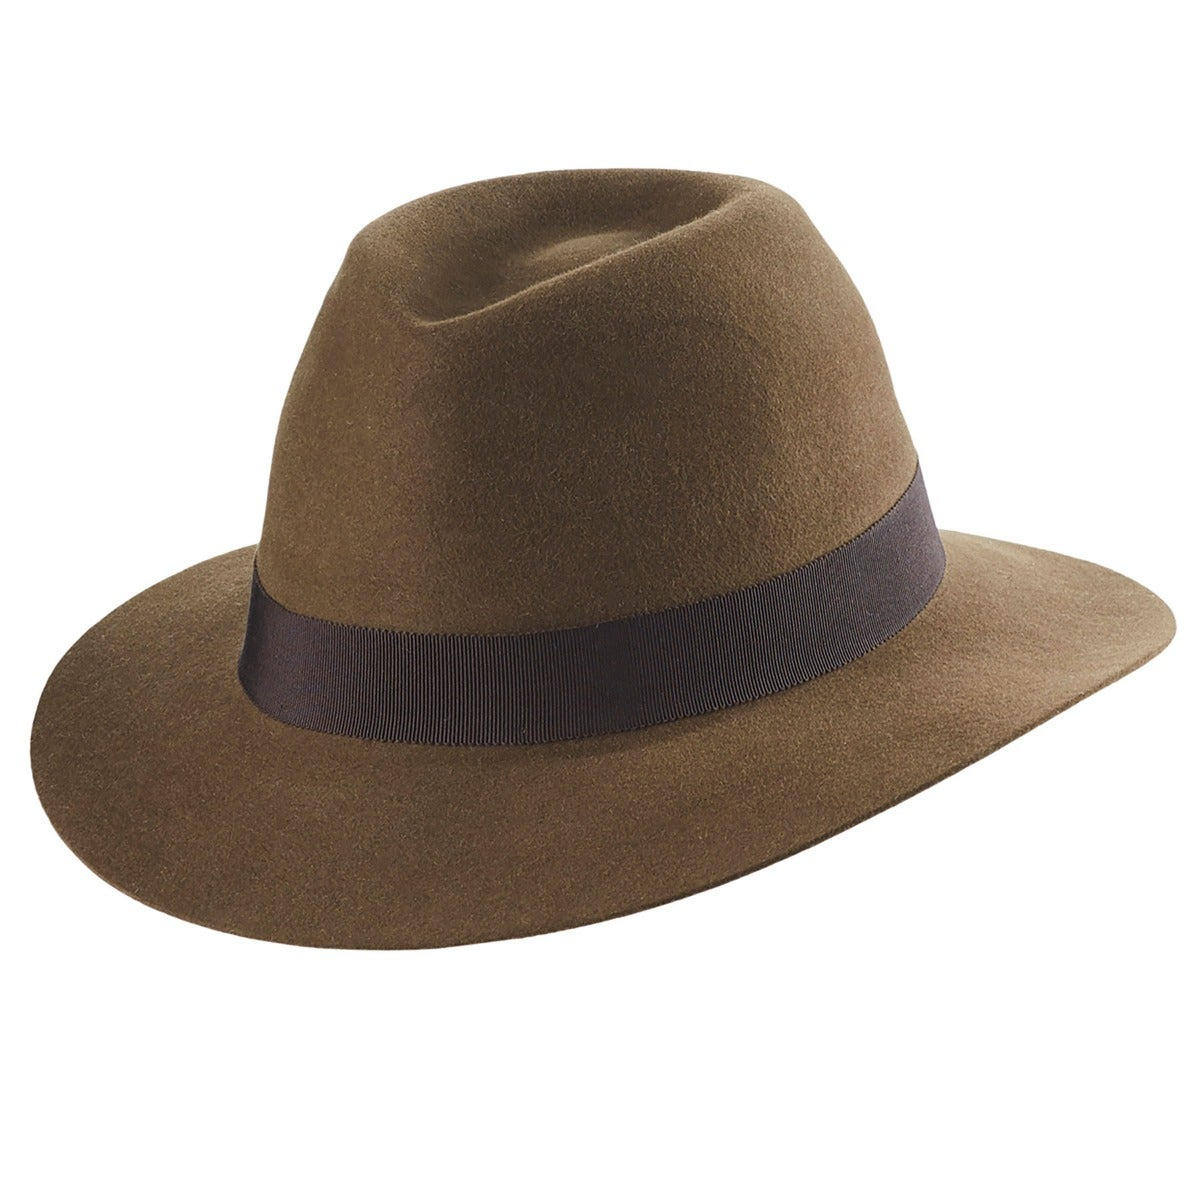 1960s – 70s Style Men's Hats Wilson Fedora $140.00 AT vintagedancer.com